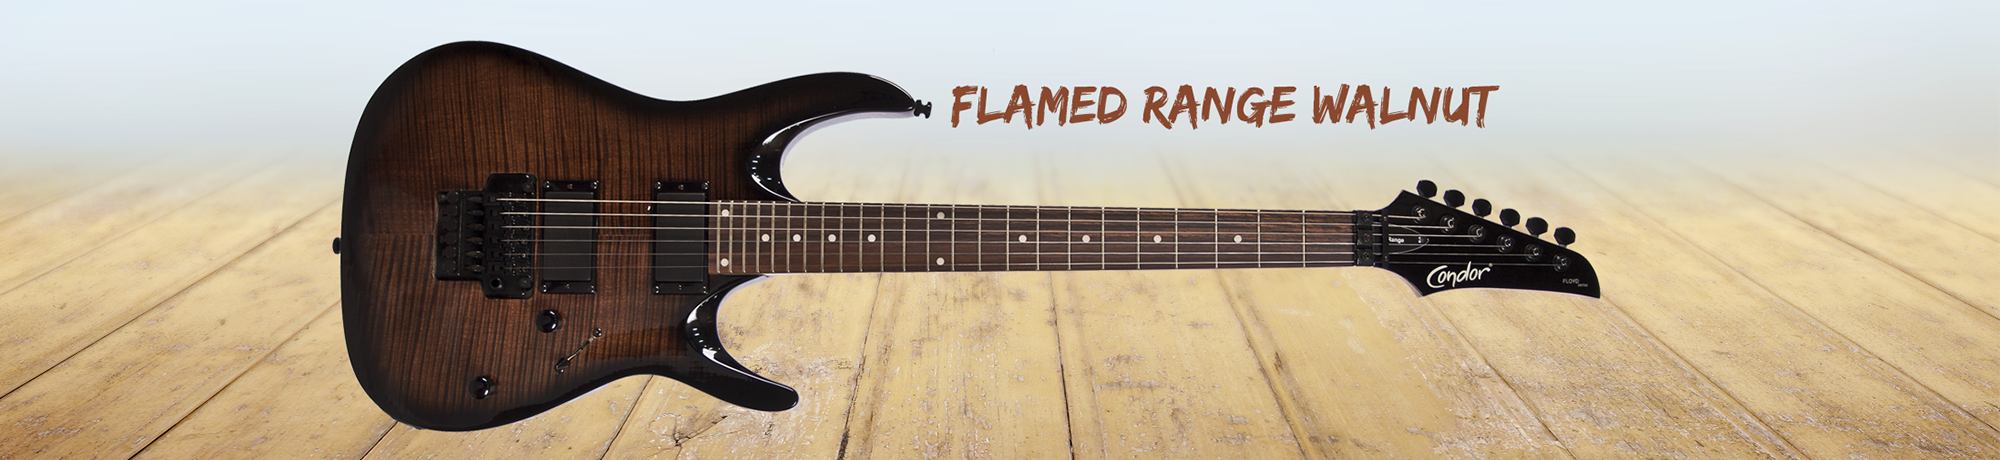 flamed-range